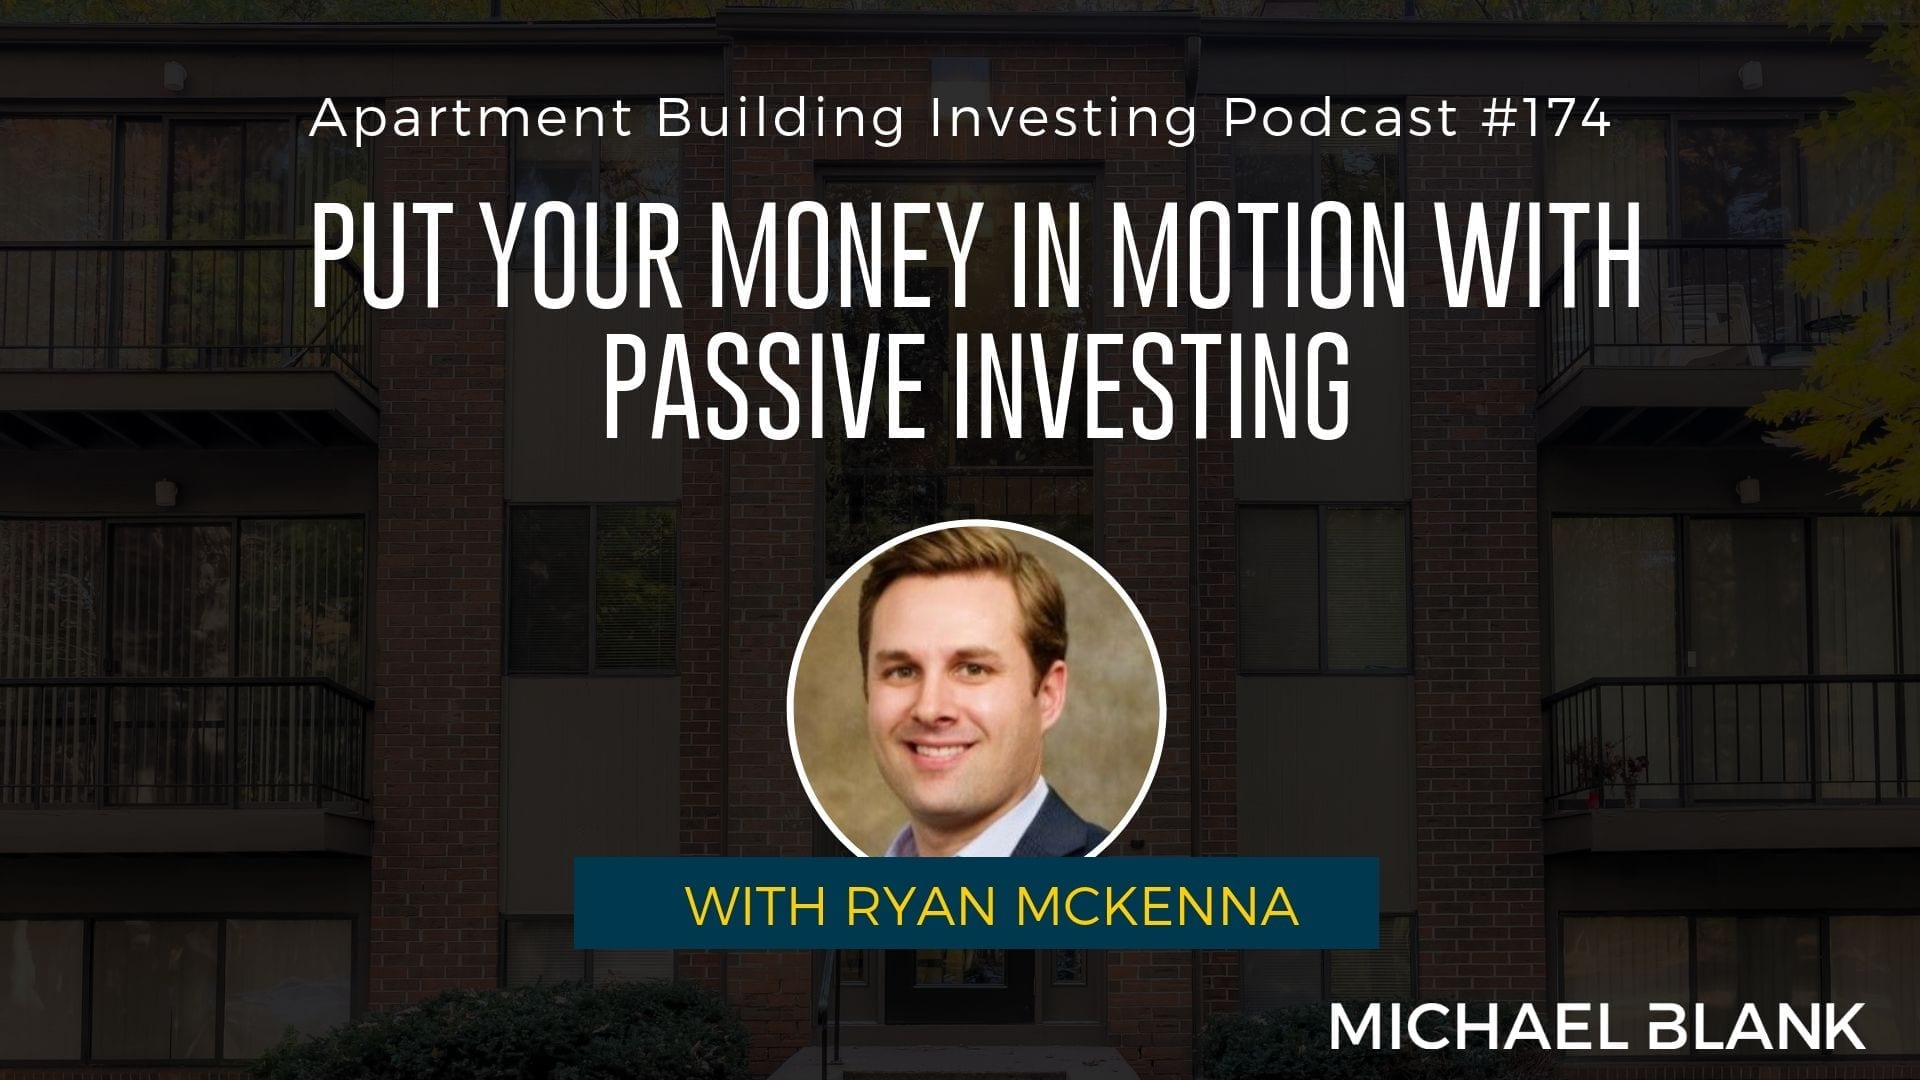 MB 174: Put Your Money in Motion with Passive Investing – With Ryan McKenna